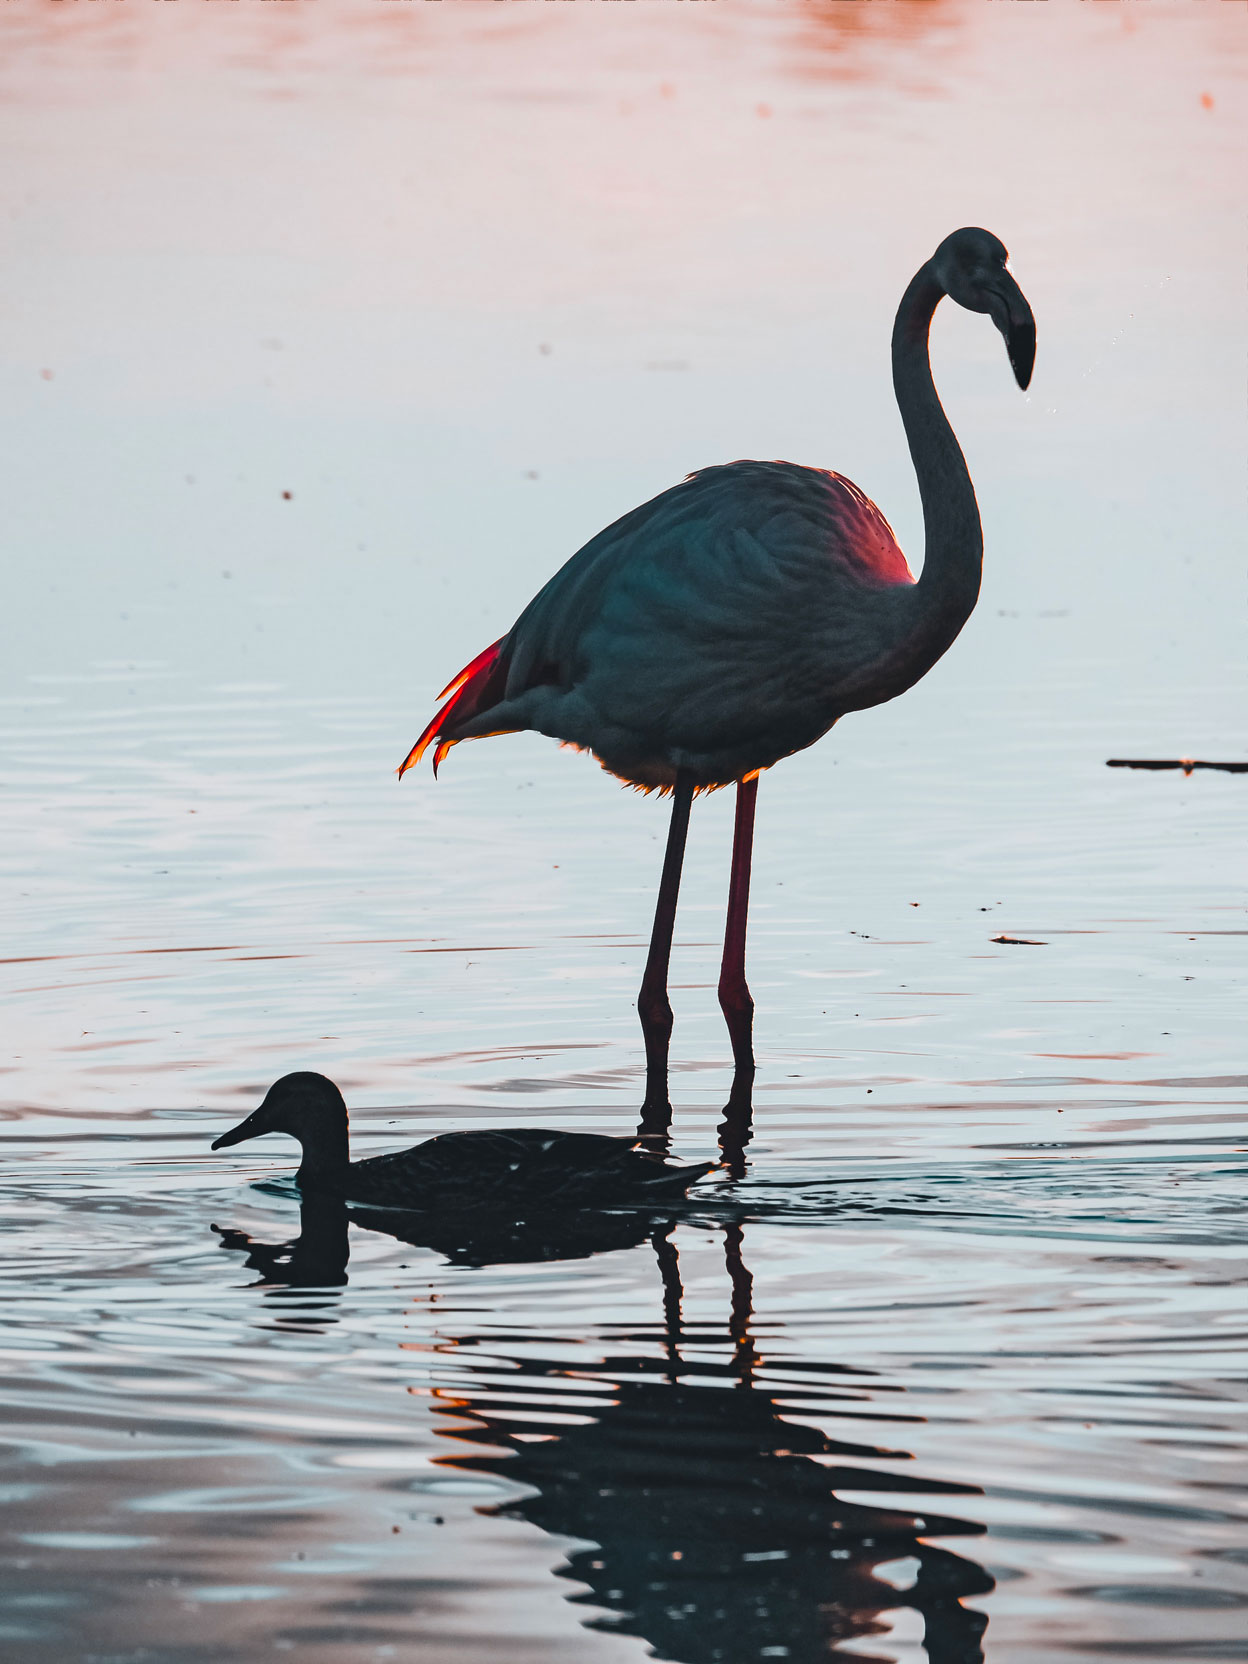 Photograph of a flamingo and a duck